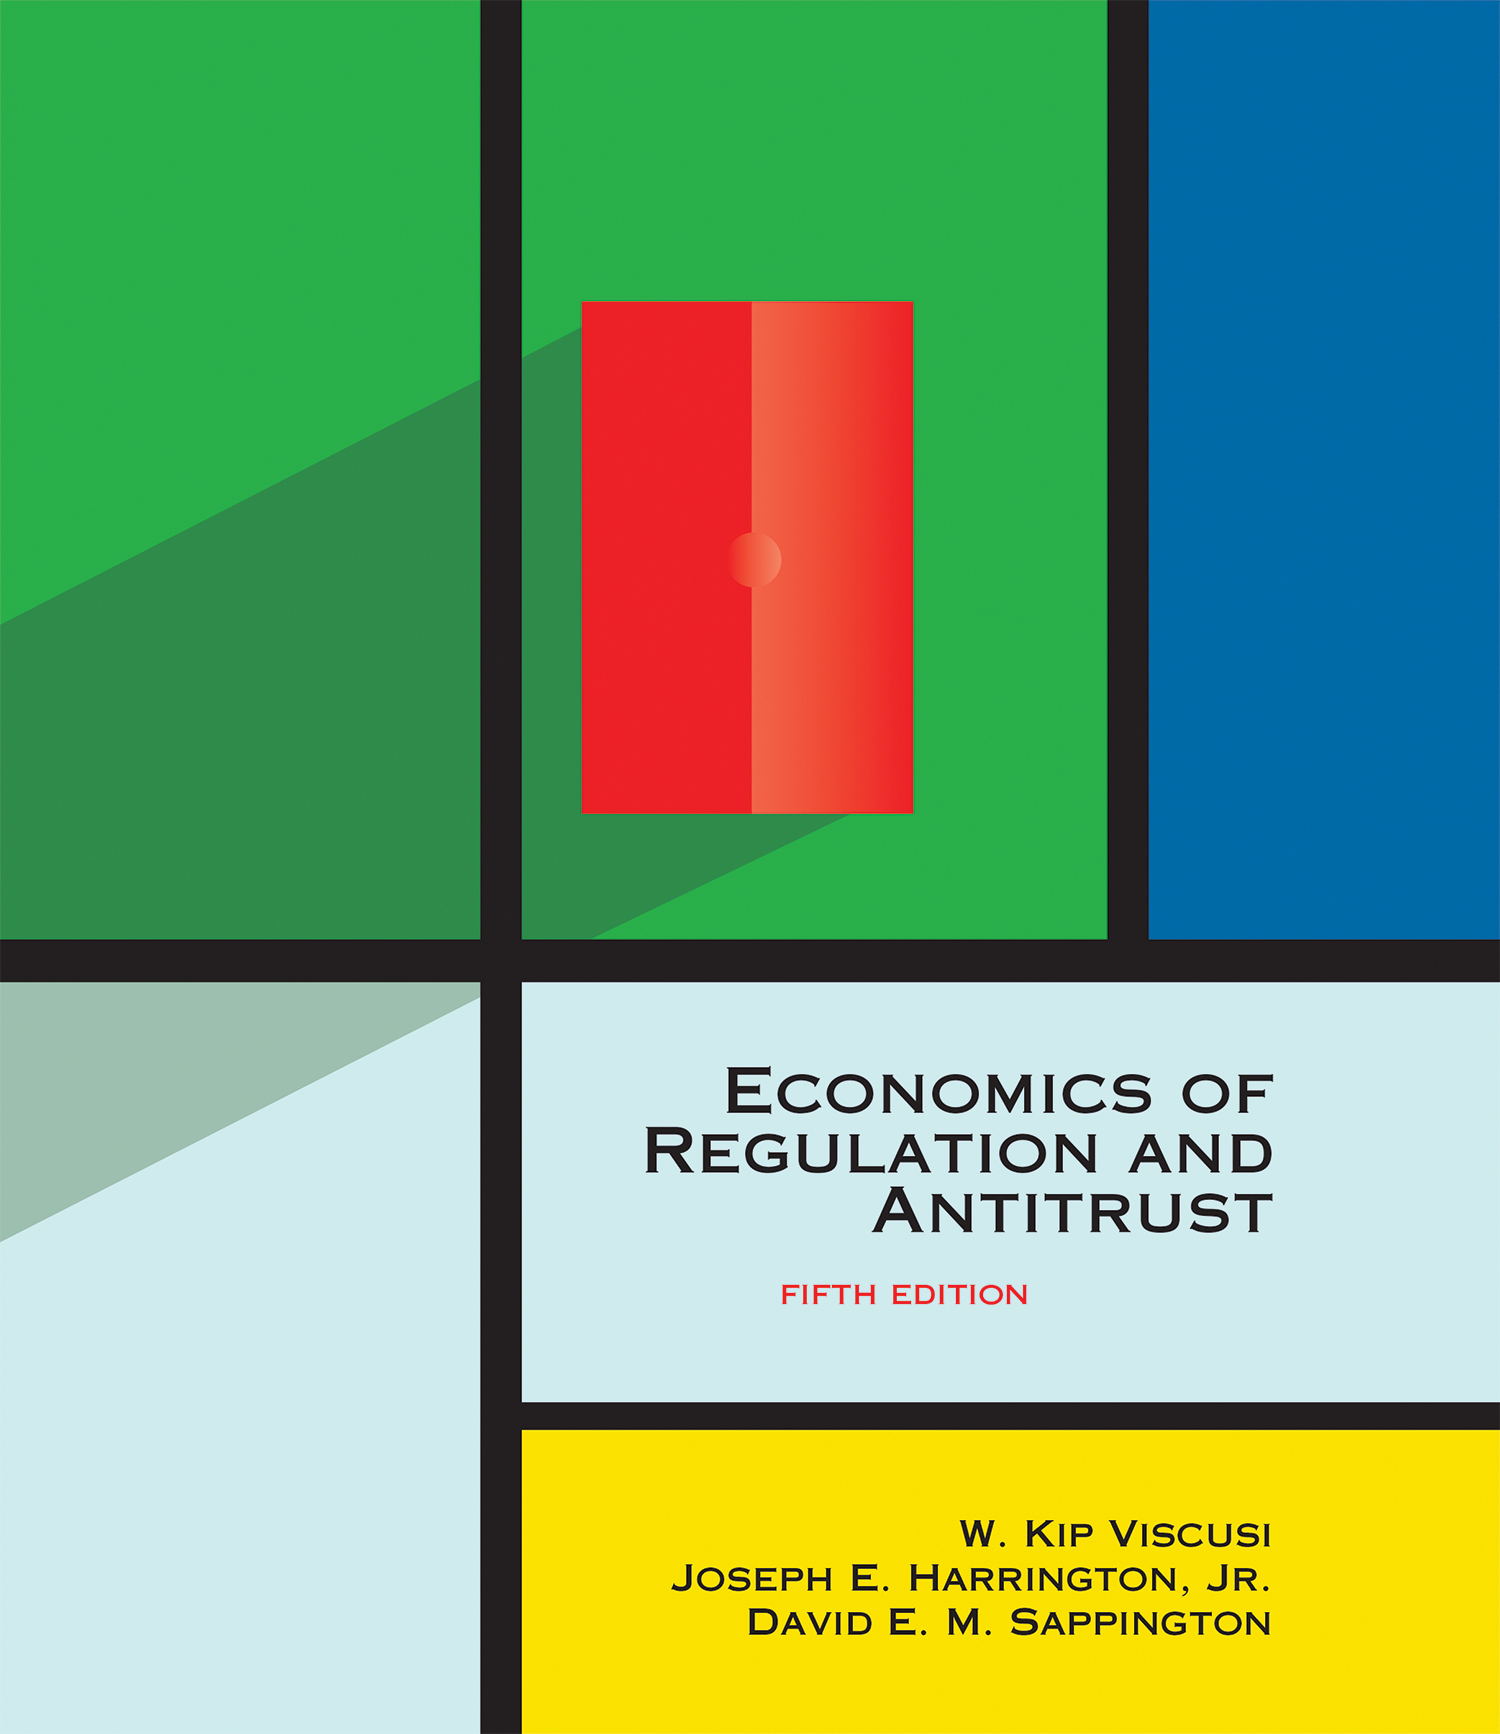 Economics of Regulation and Antitrust